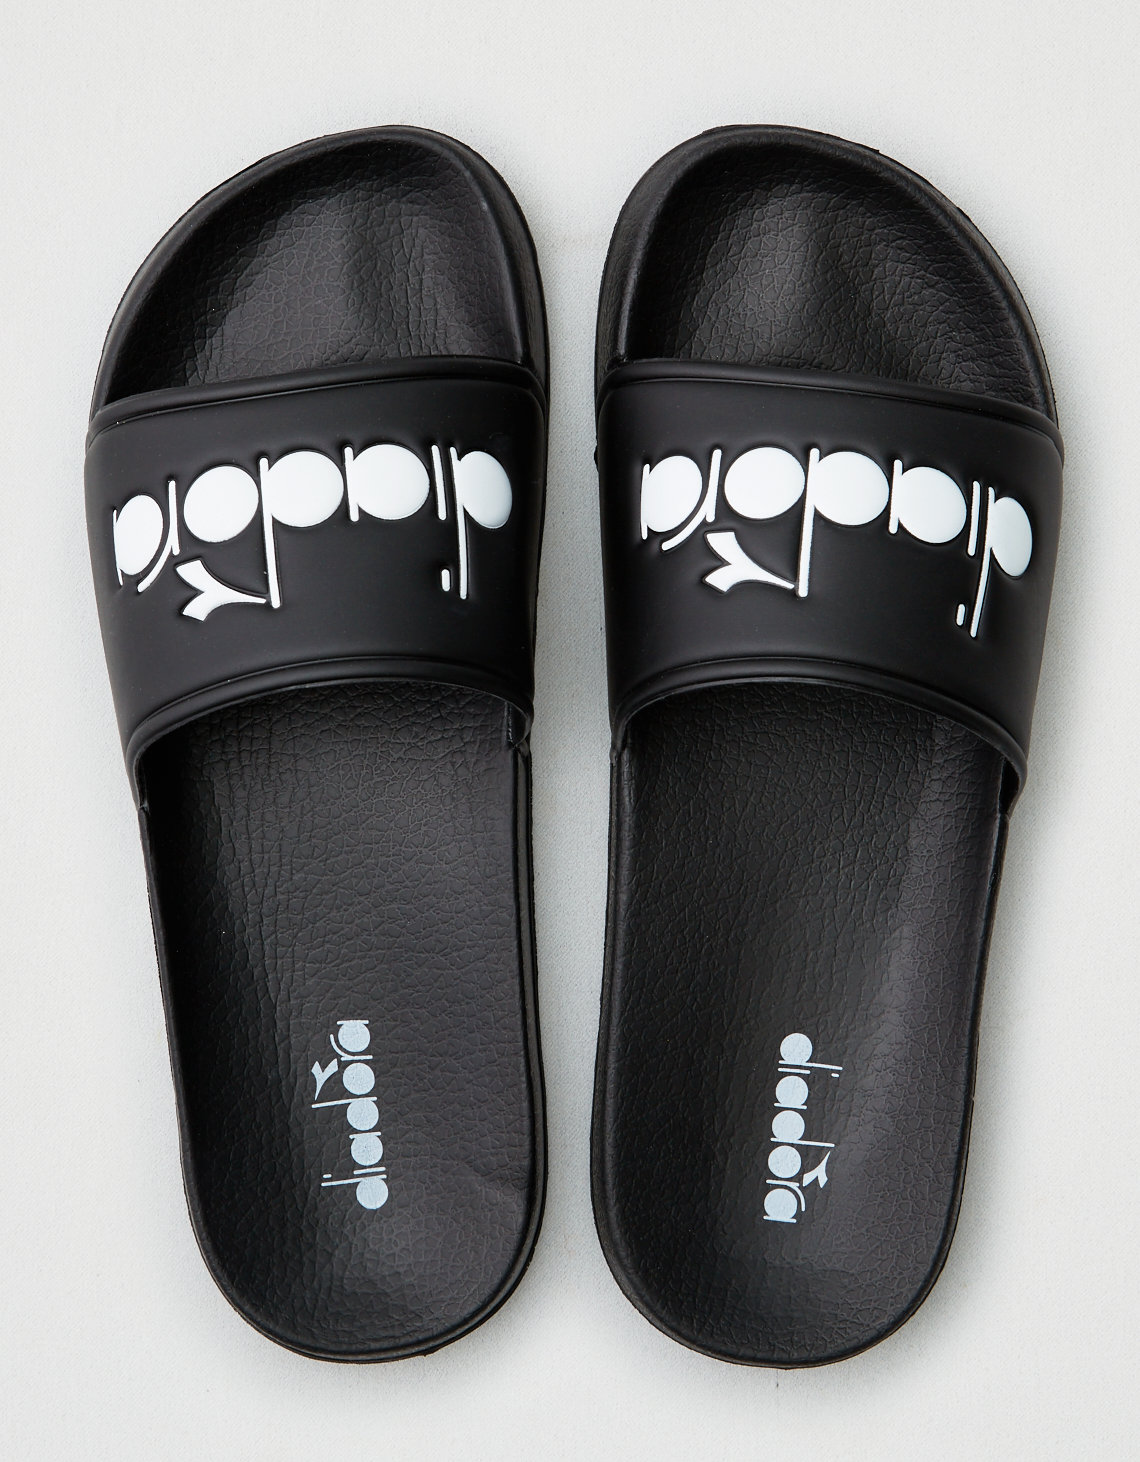 free shipping fashion Style Diadora Serifos '90 Slide Sandal sale from china outlet newest pxY51LIOo0